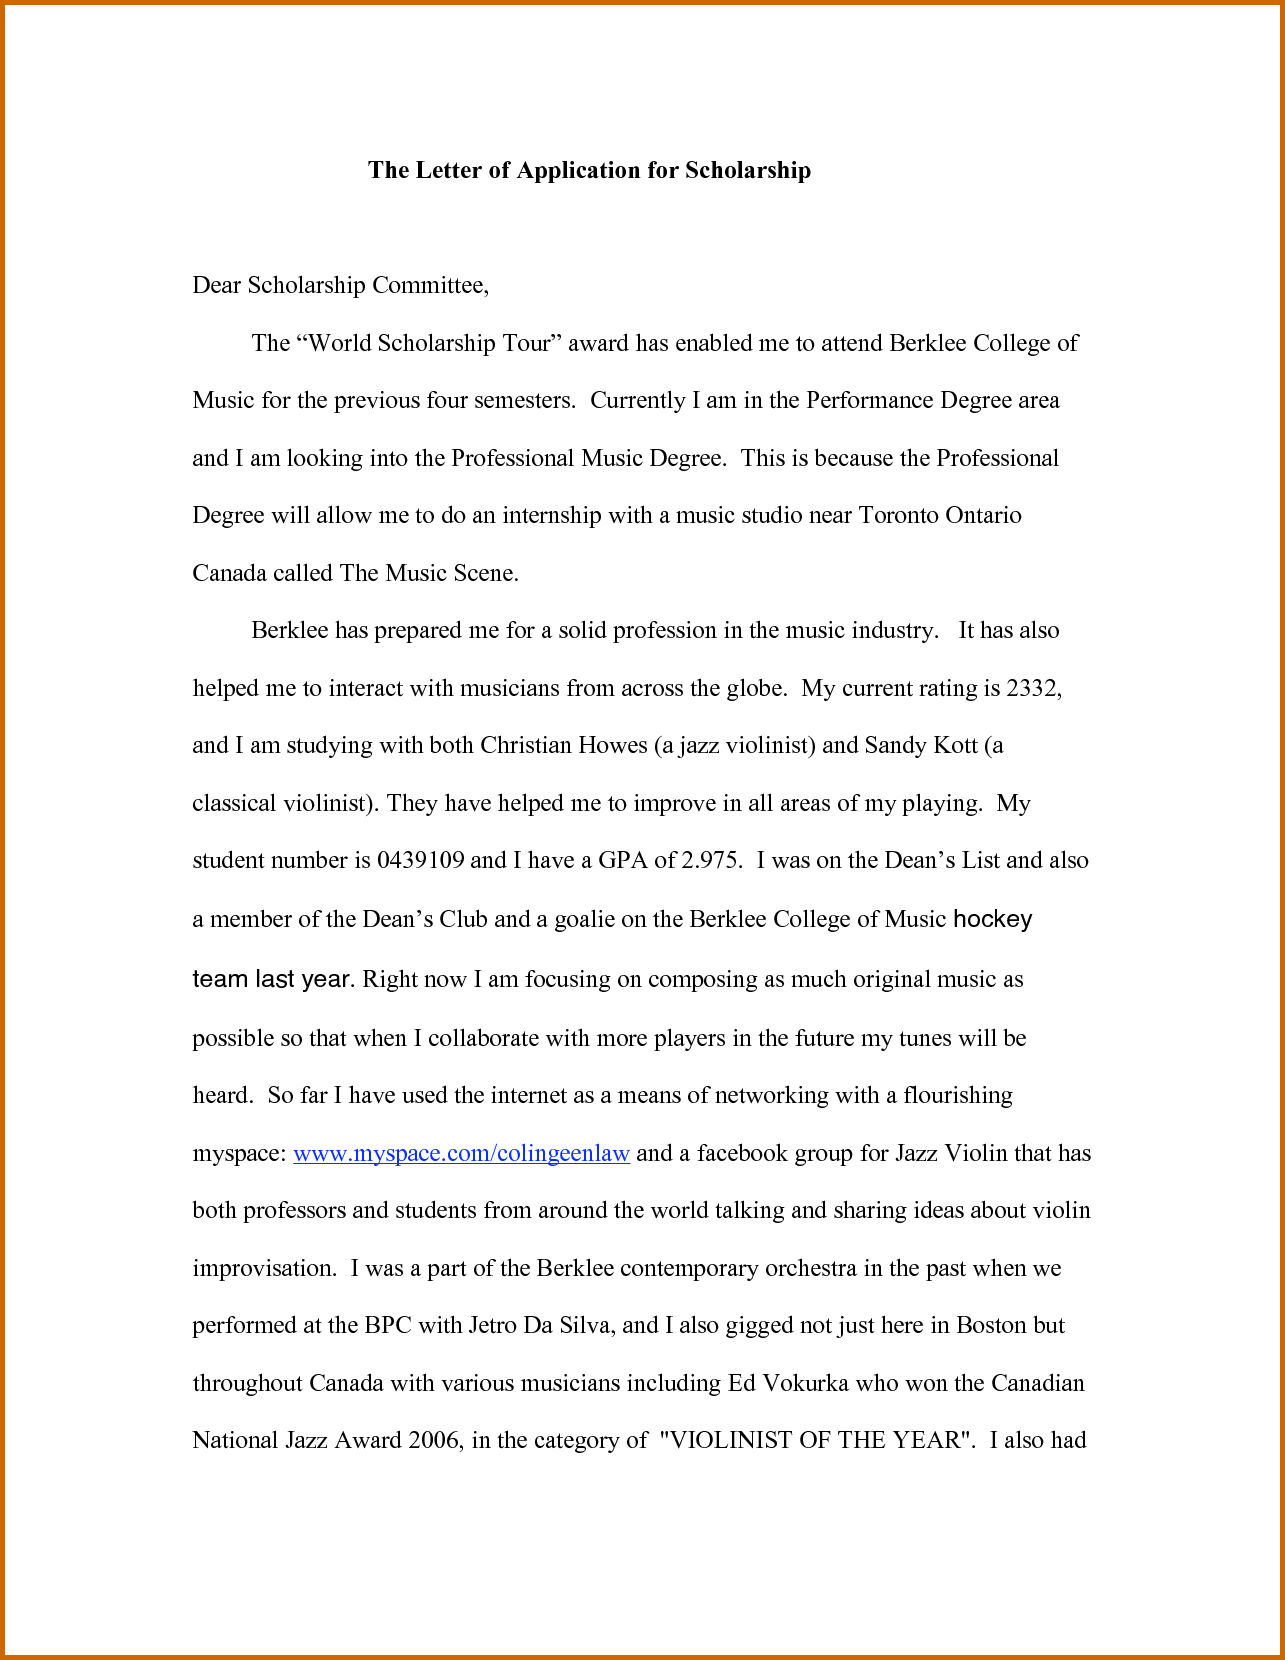 003 How To Write Application For Scholarship Sample Essays Essay Awful High School Seniors 500 Words Full